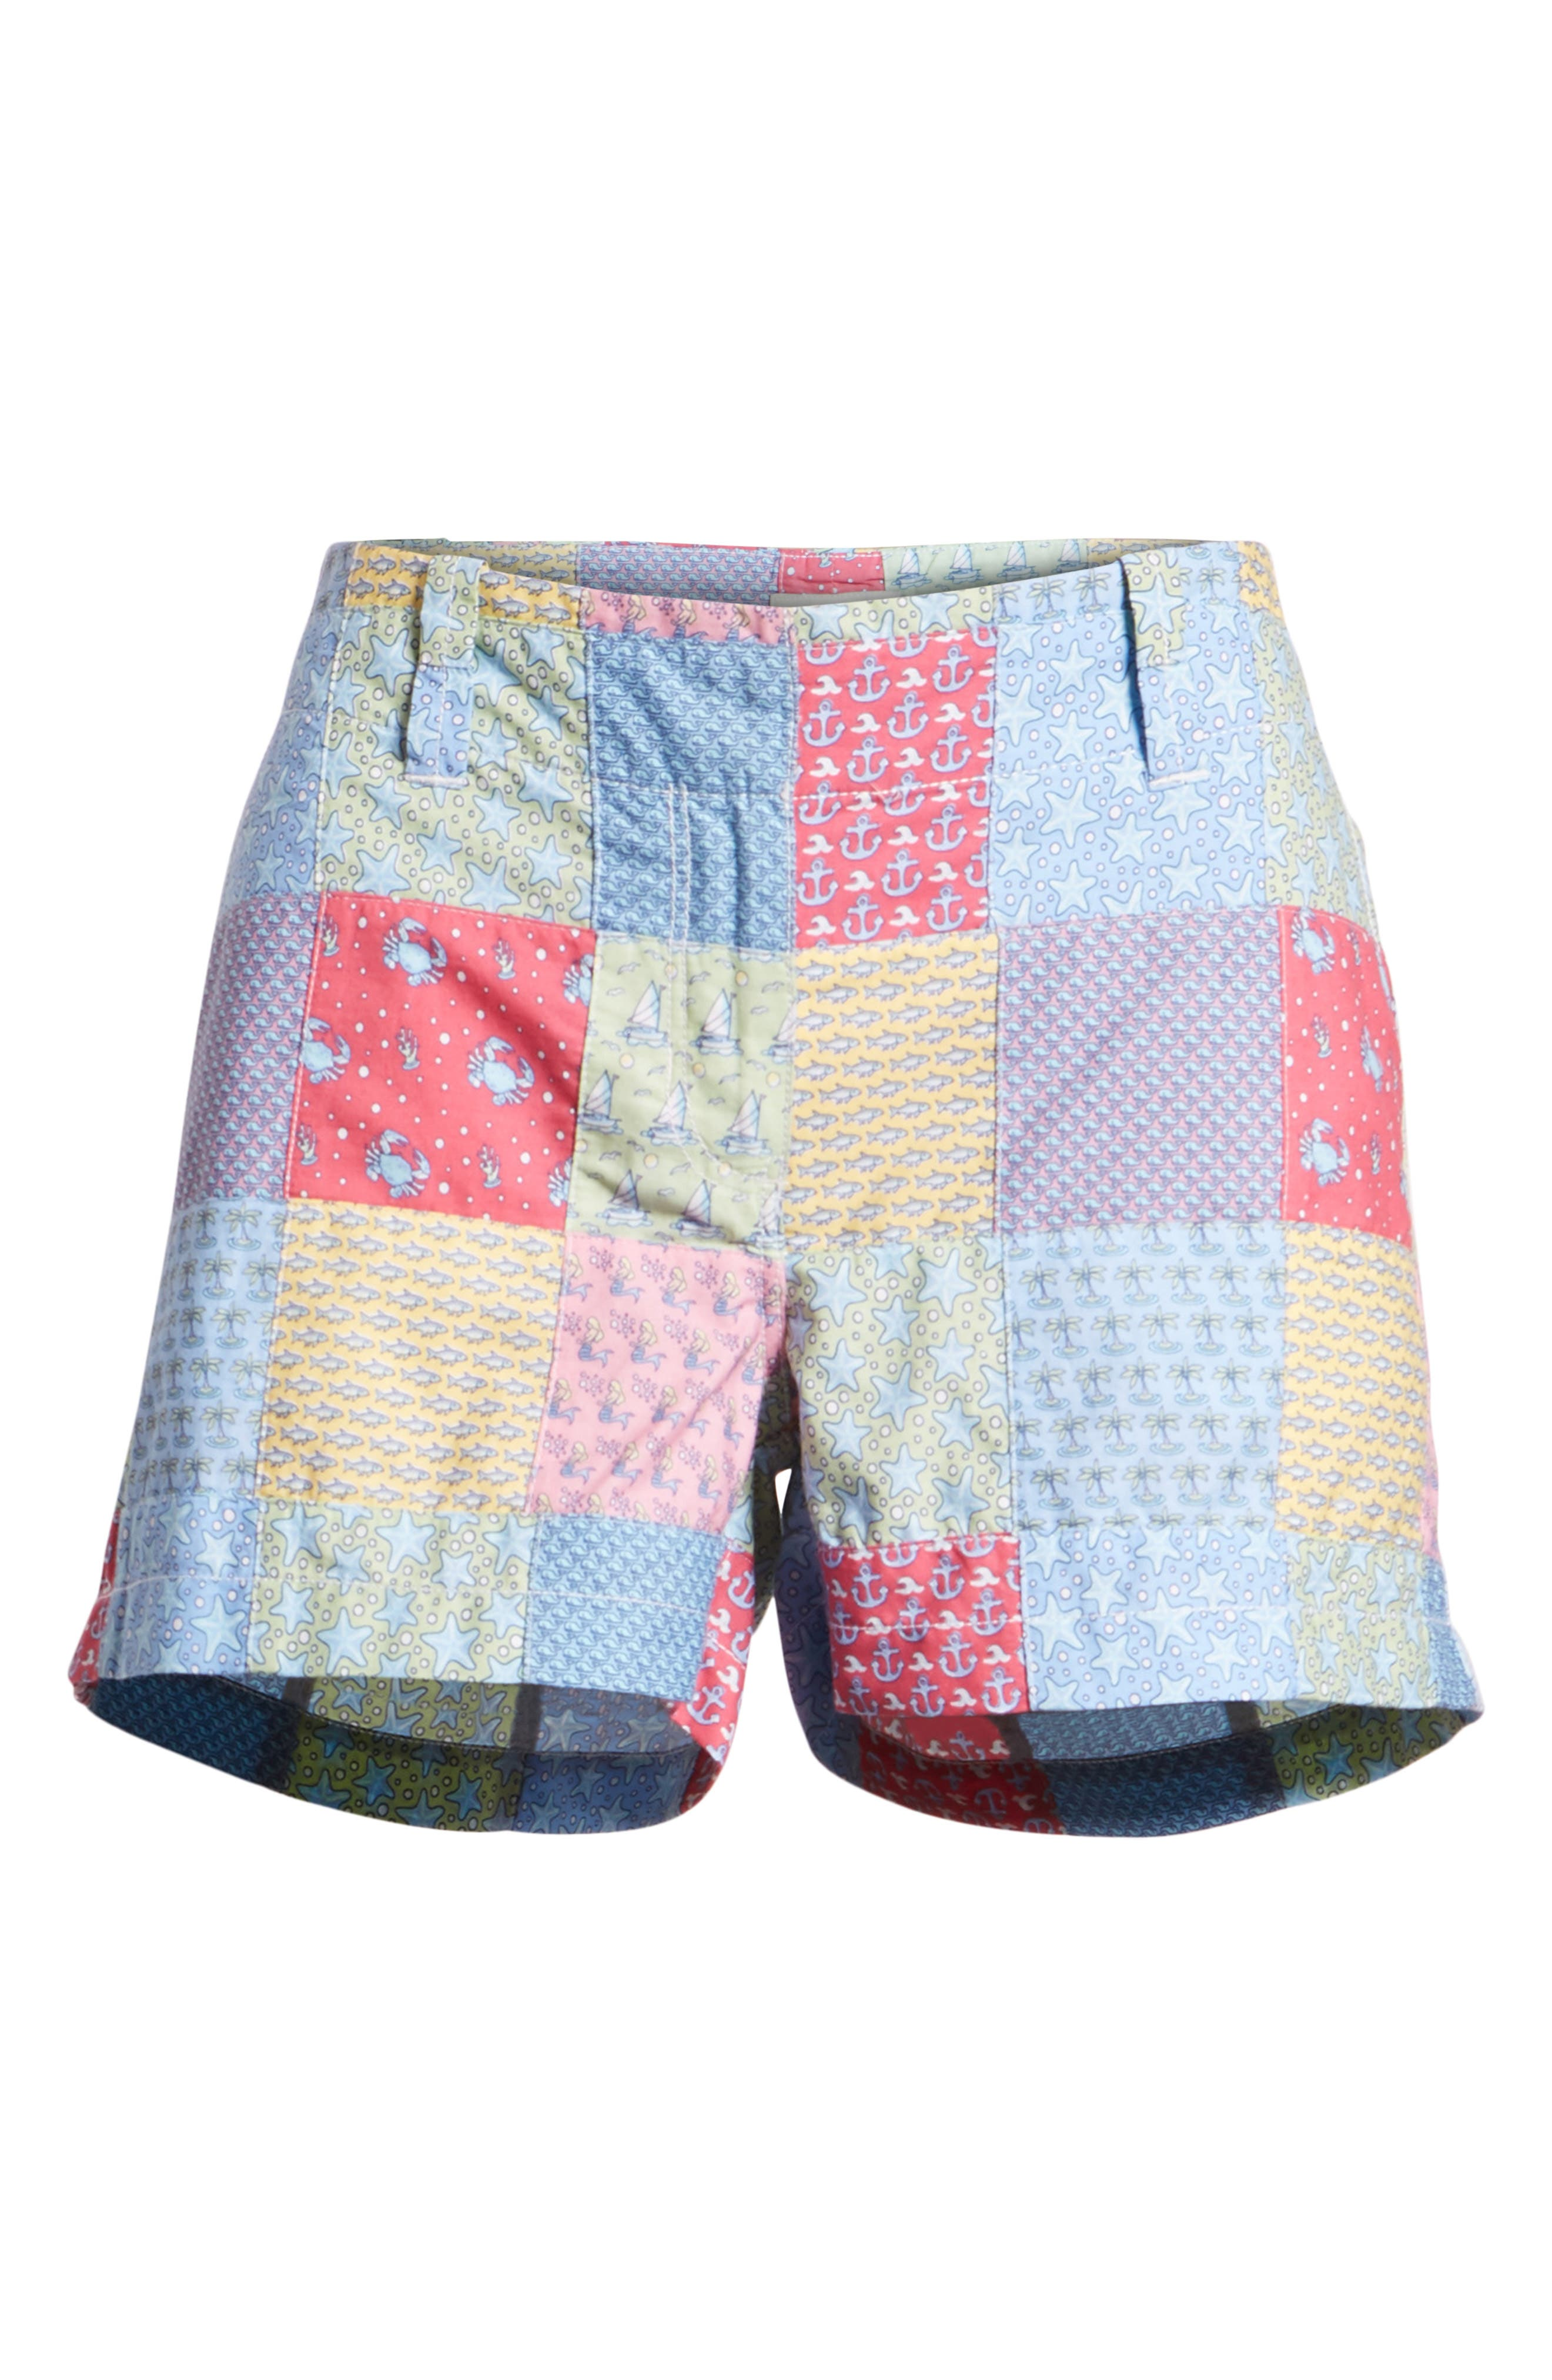 Patchwork Everyday Shorts,                             Alternate thumbnail 6, color,                             631